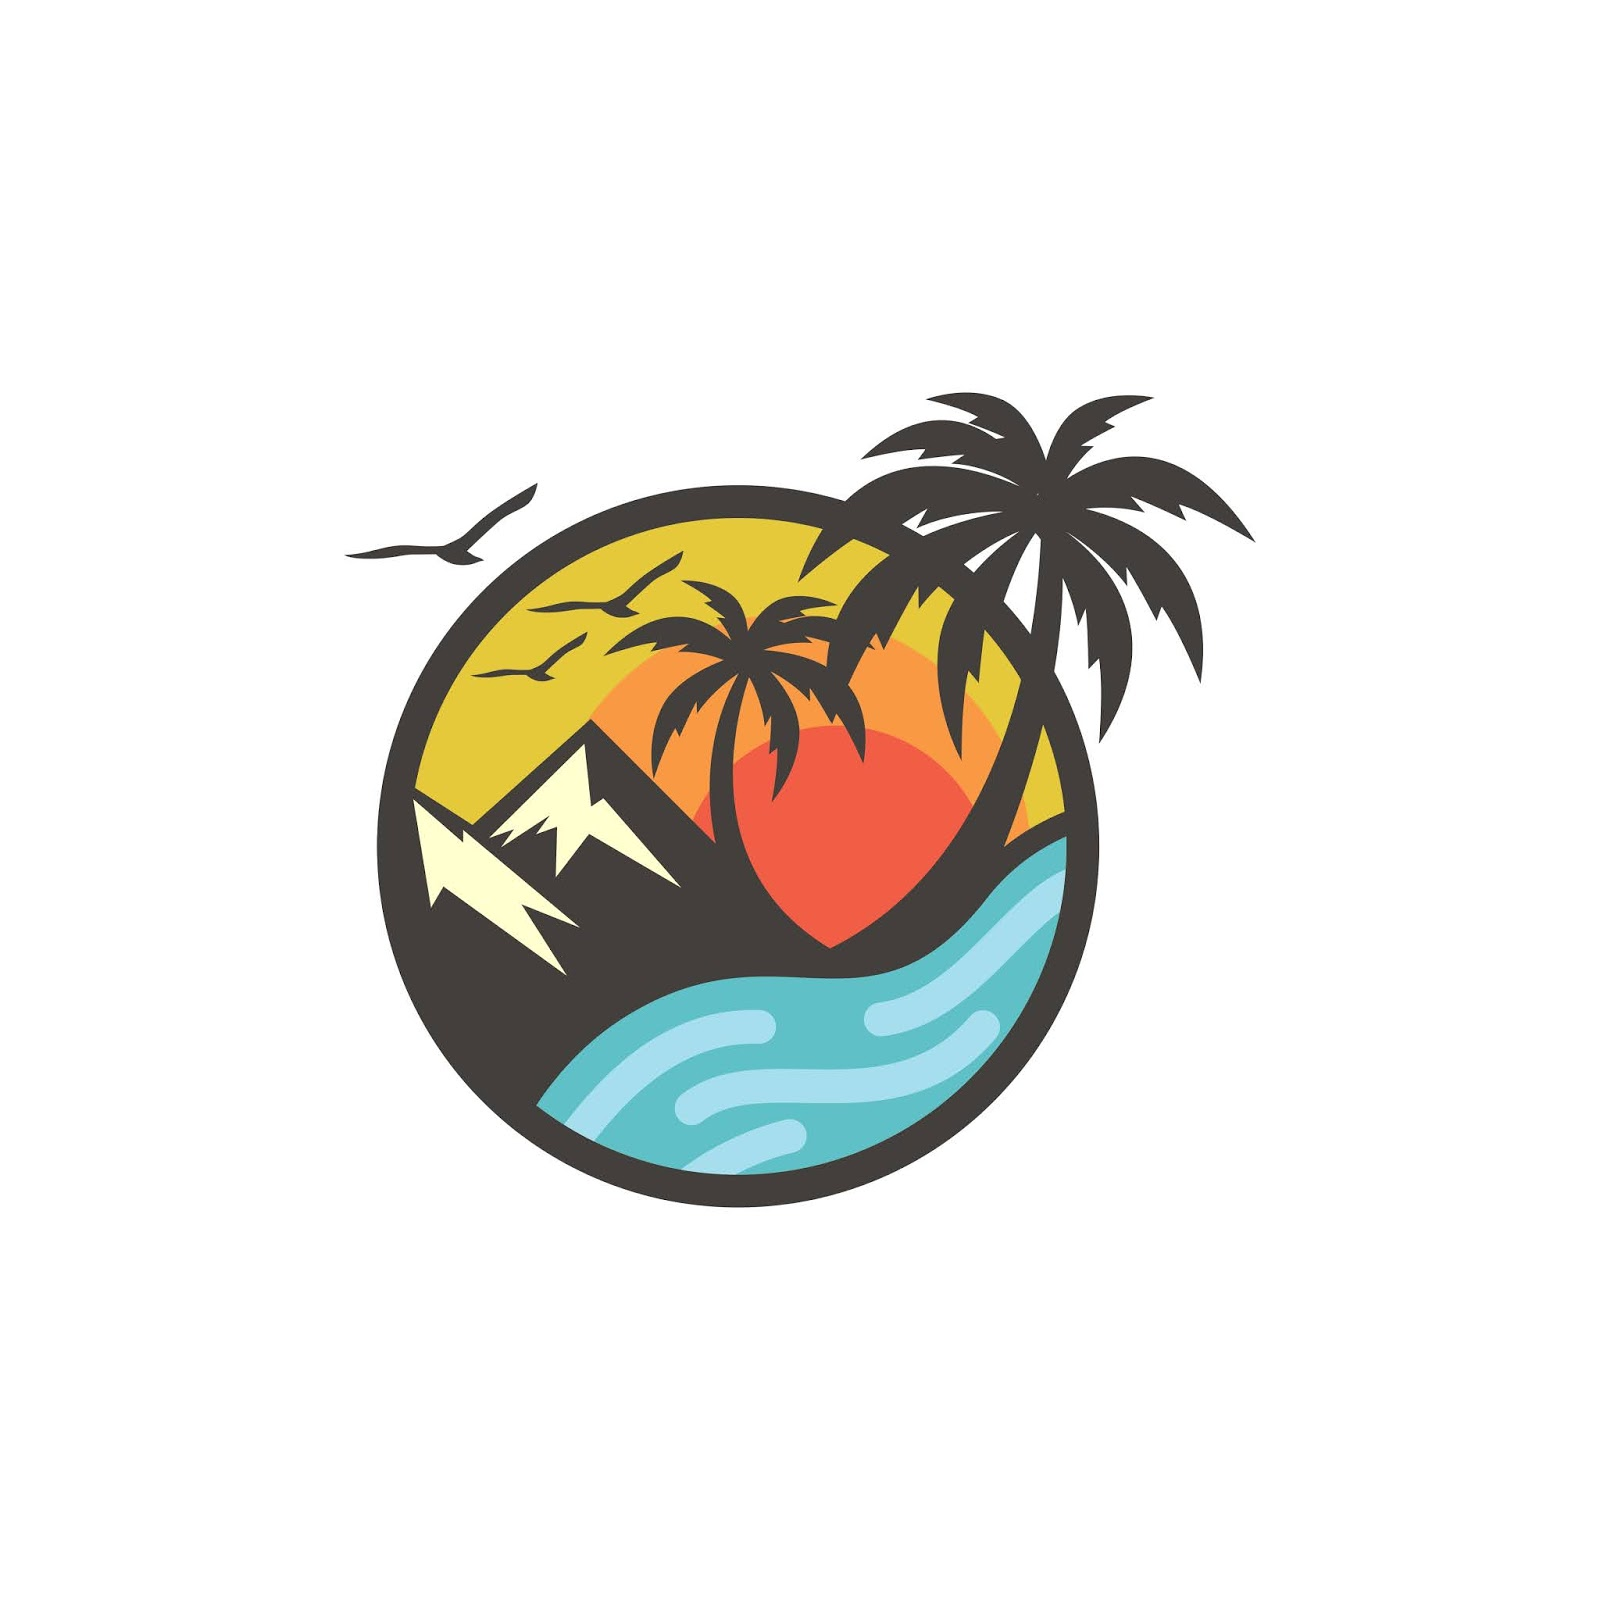 Beach Logo Design Vector Template.jpg Free Download Vector CDR, AI, EPS and PNG Formats